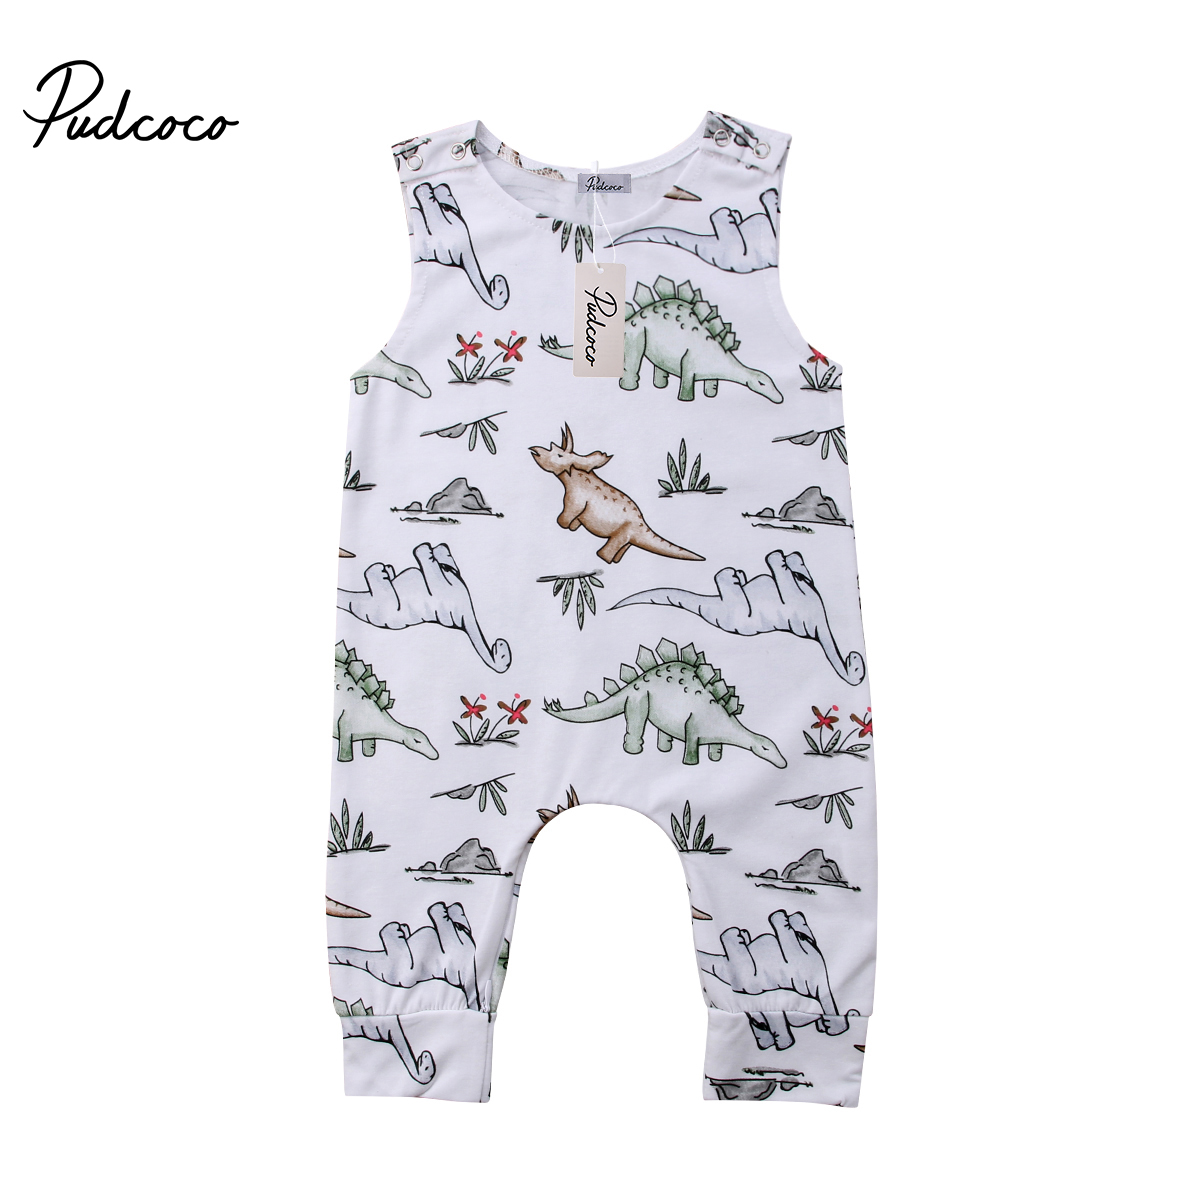 e828526f1f16 2018 Brand New Newborn Toddler Infant Baby Boy Girl Dinosaur Romper  Jumpsuit Playsuit Clothes Outfits Sleeveless Summer Sunsuit